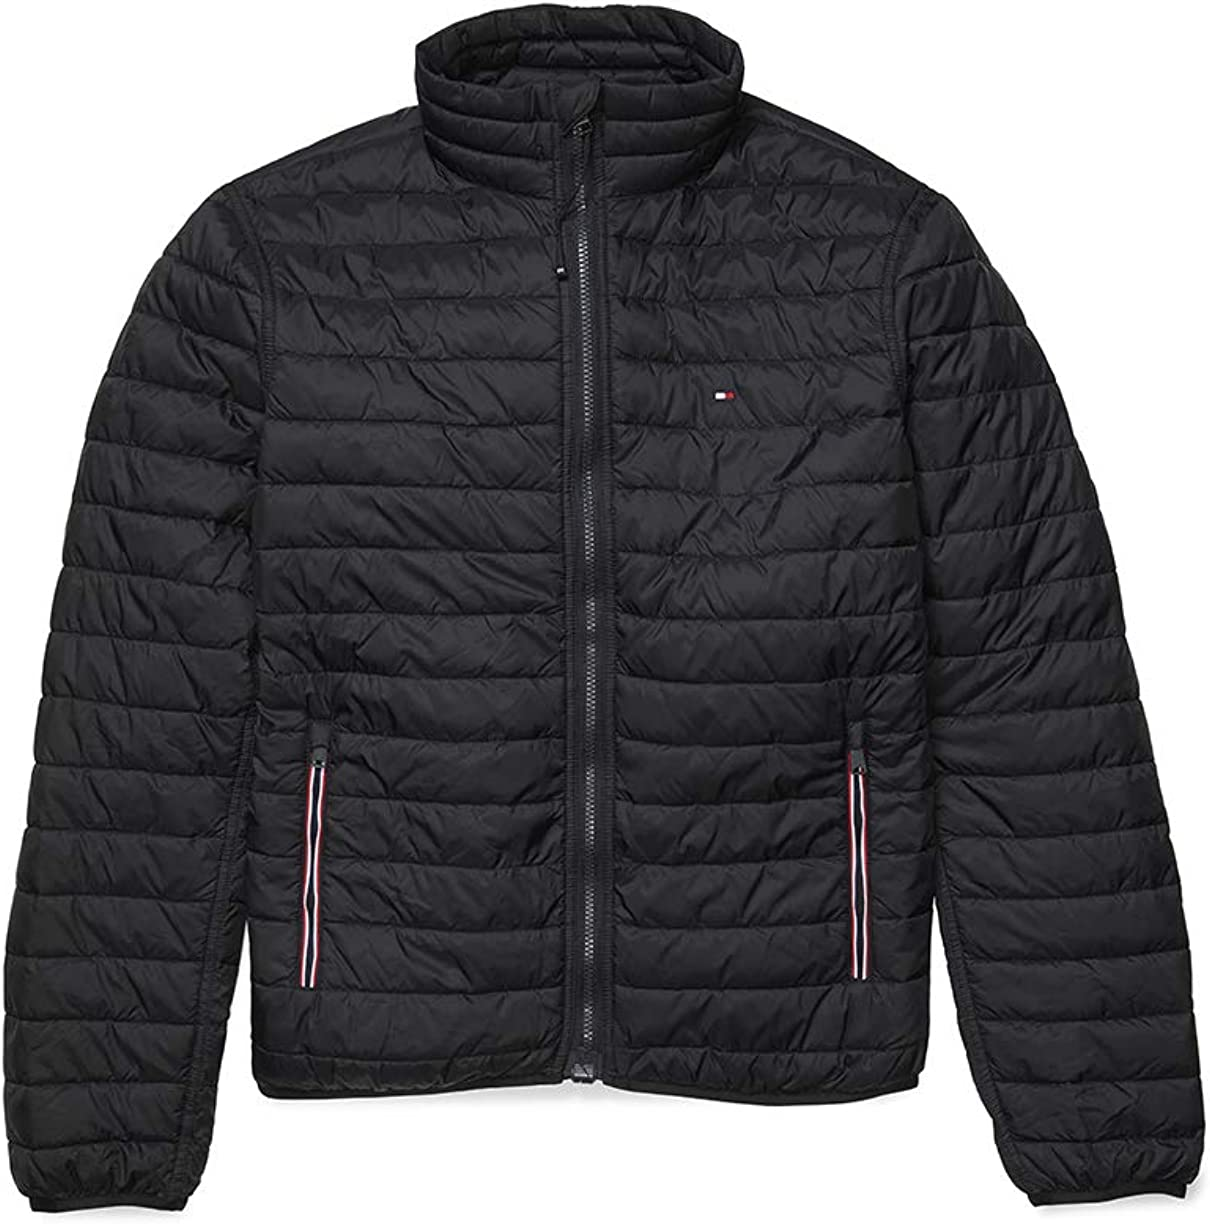 Tommy Hilfiger Men's Adaptive Insulator Jacket with Magnetic Zipper